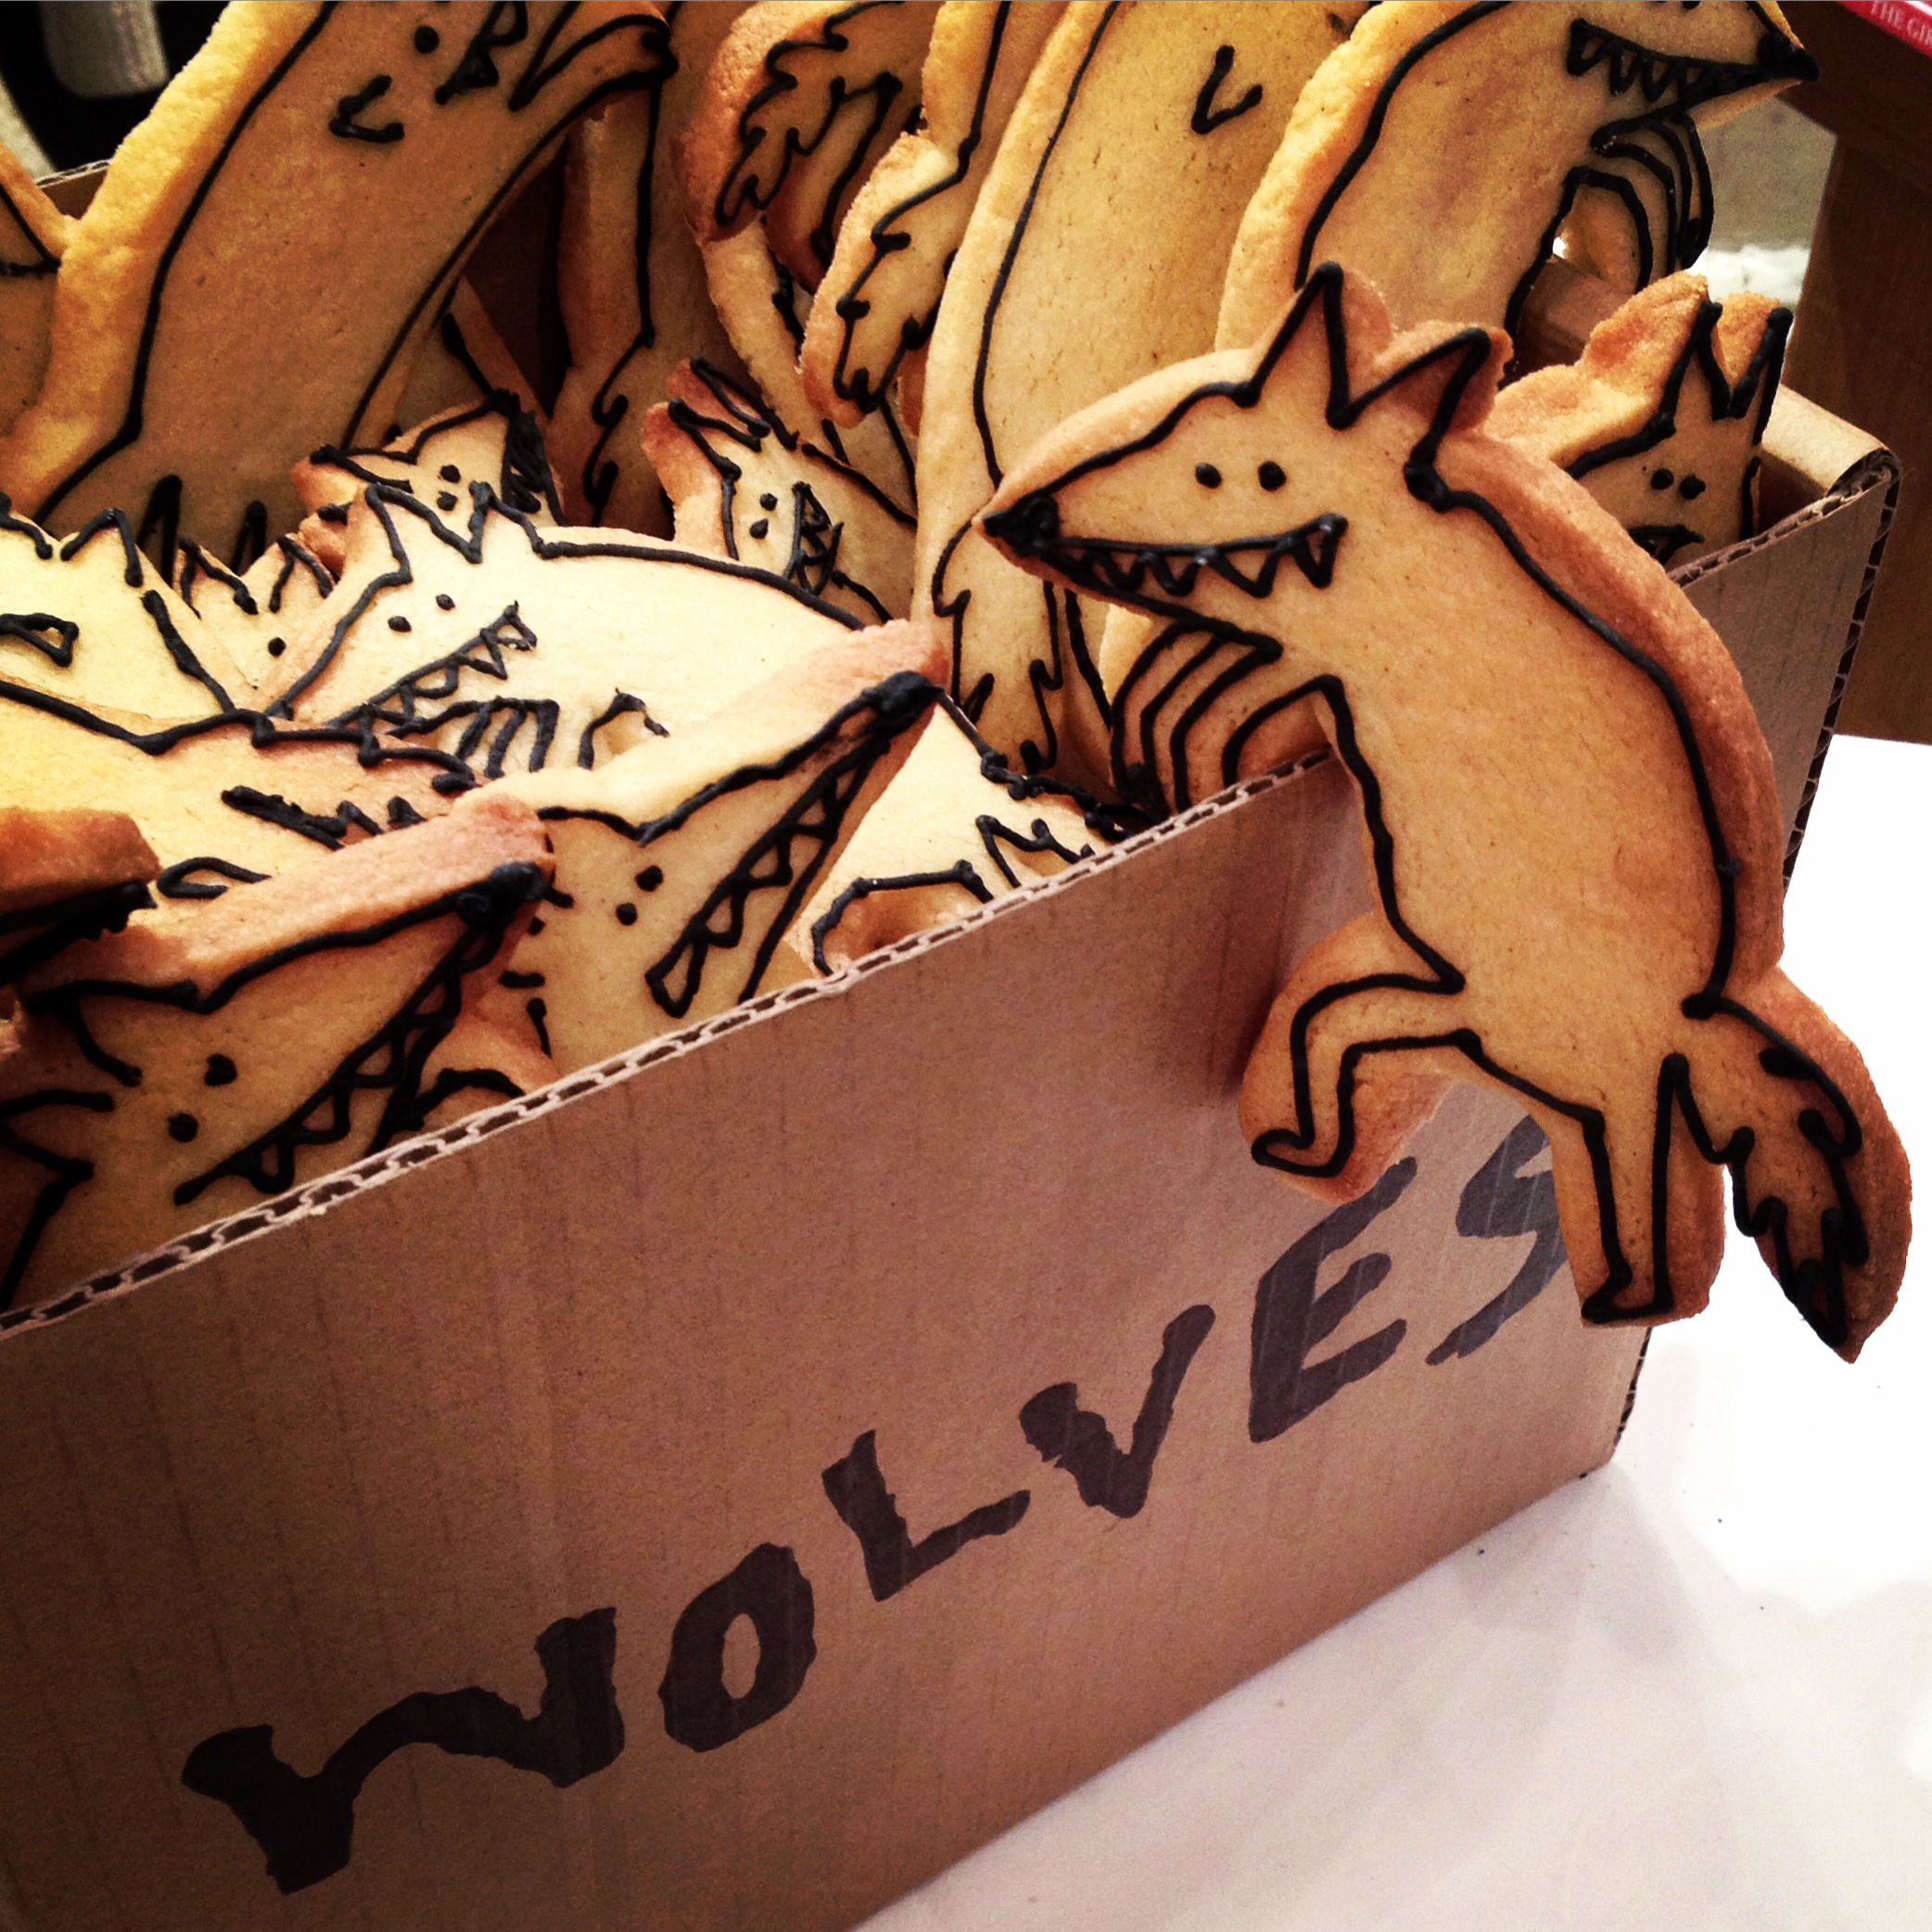 Wolf biscuits by Love & Cake (photo by Trudi Esburger)